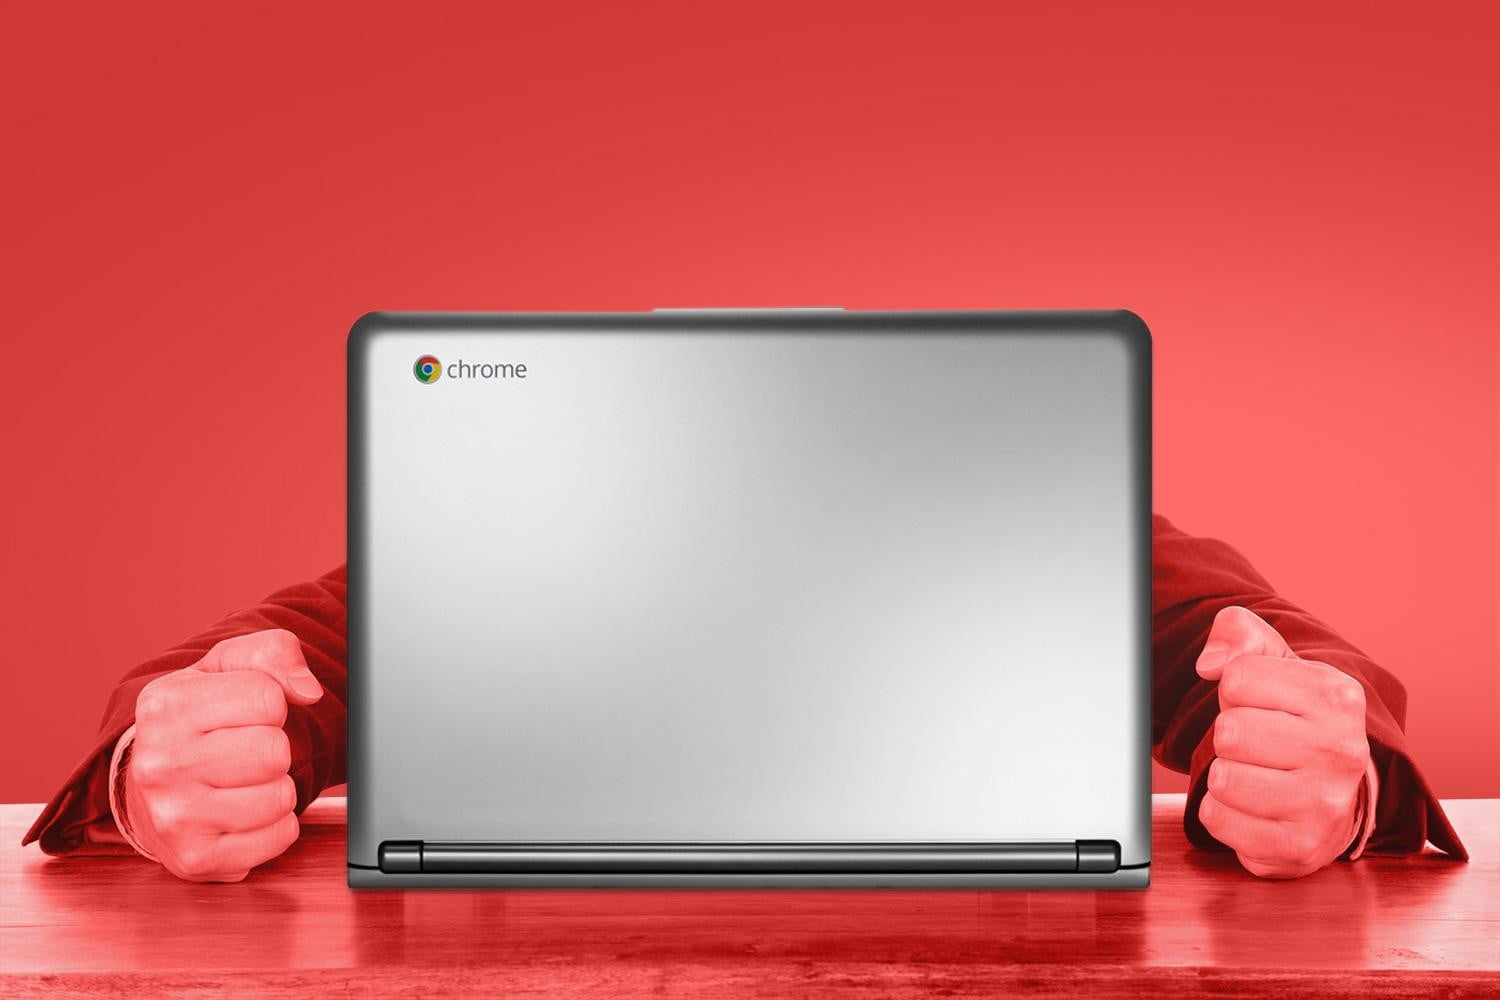 How To Get Roblox On Chromebook Simple 3 Ways Chrome Os Chromebook Review Living With Chrome Os Was Hell Digital Trends